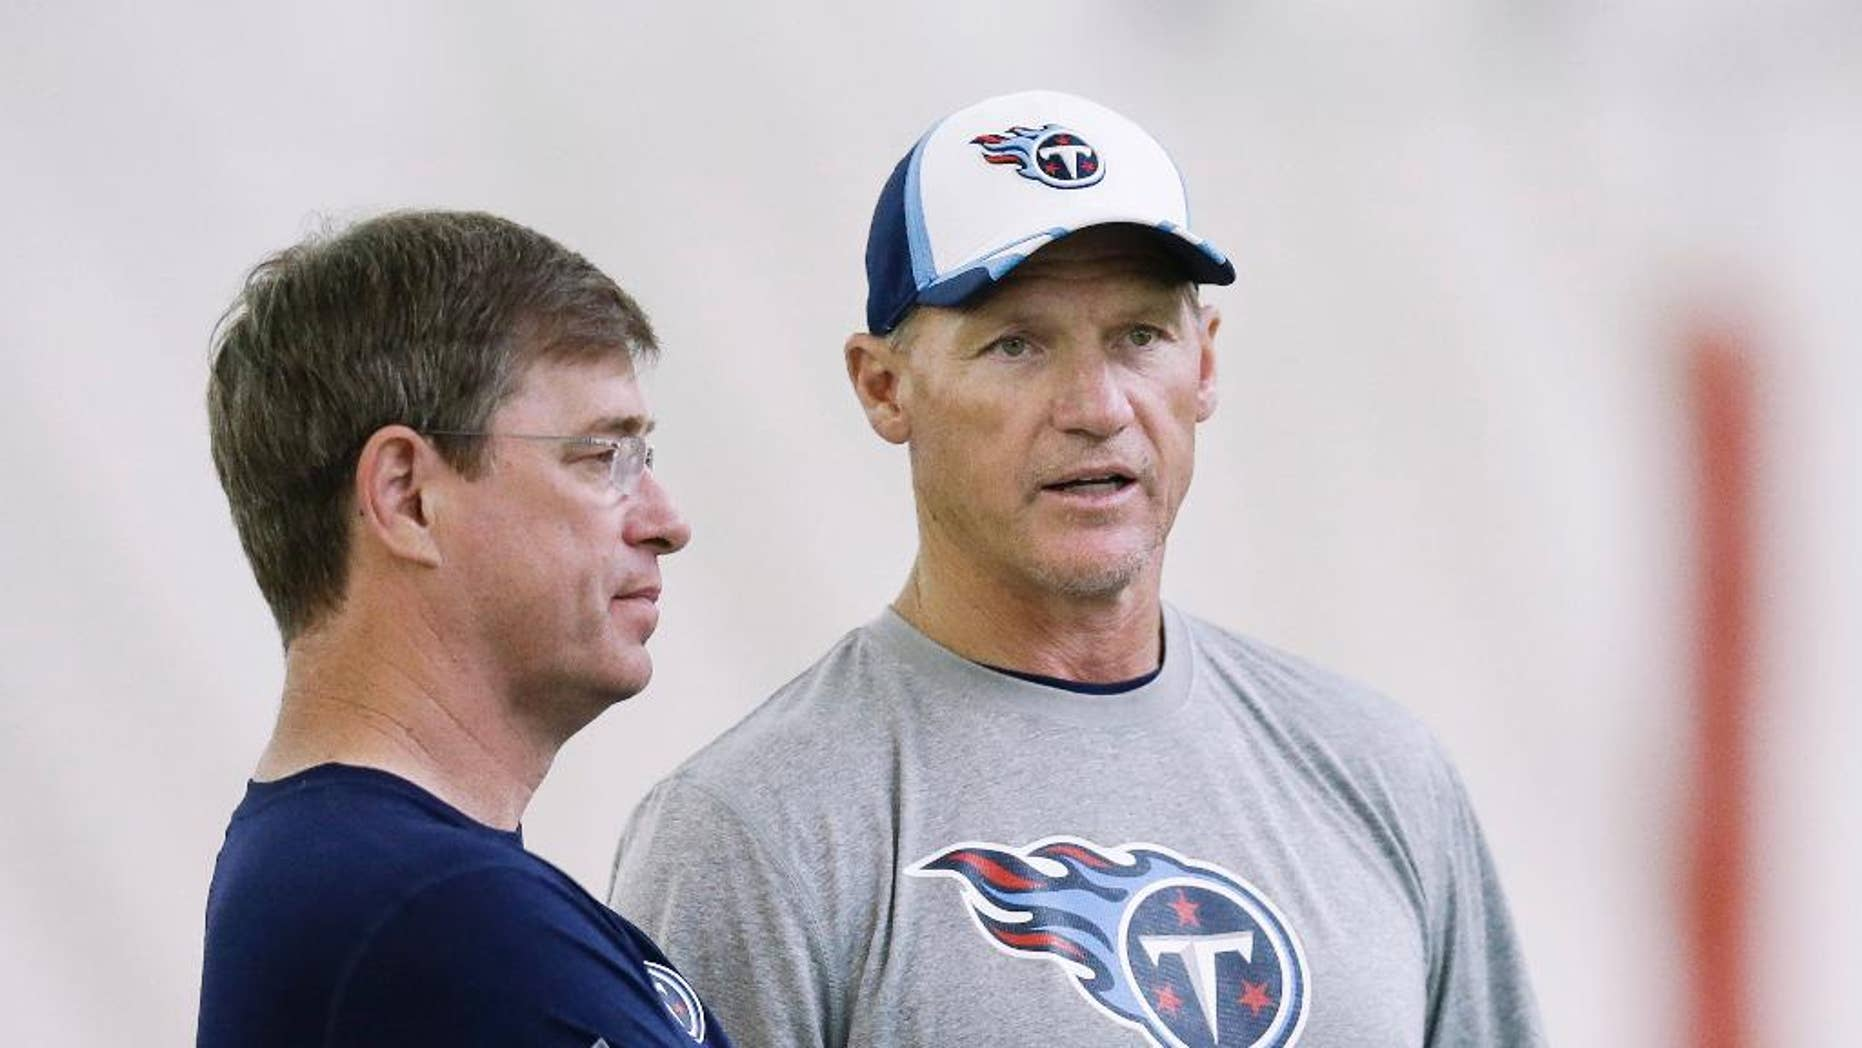 Tennessee Titans general manager Ruston Webster, left, and head coach Ken Whisenhunt talk during the NFL football minicamp on Monday, June 9, 2014, in Nashville, Tenn. (AP Photo/Mark Humphrey)